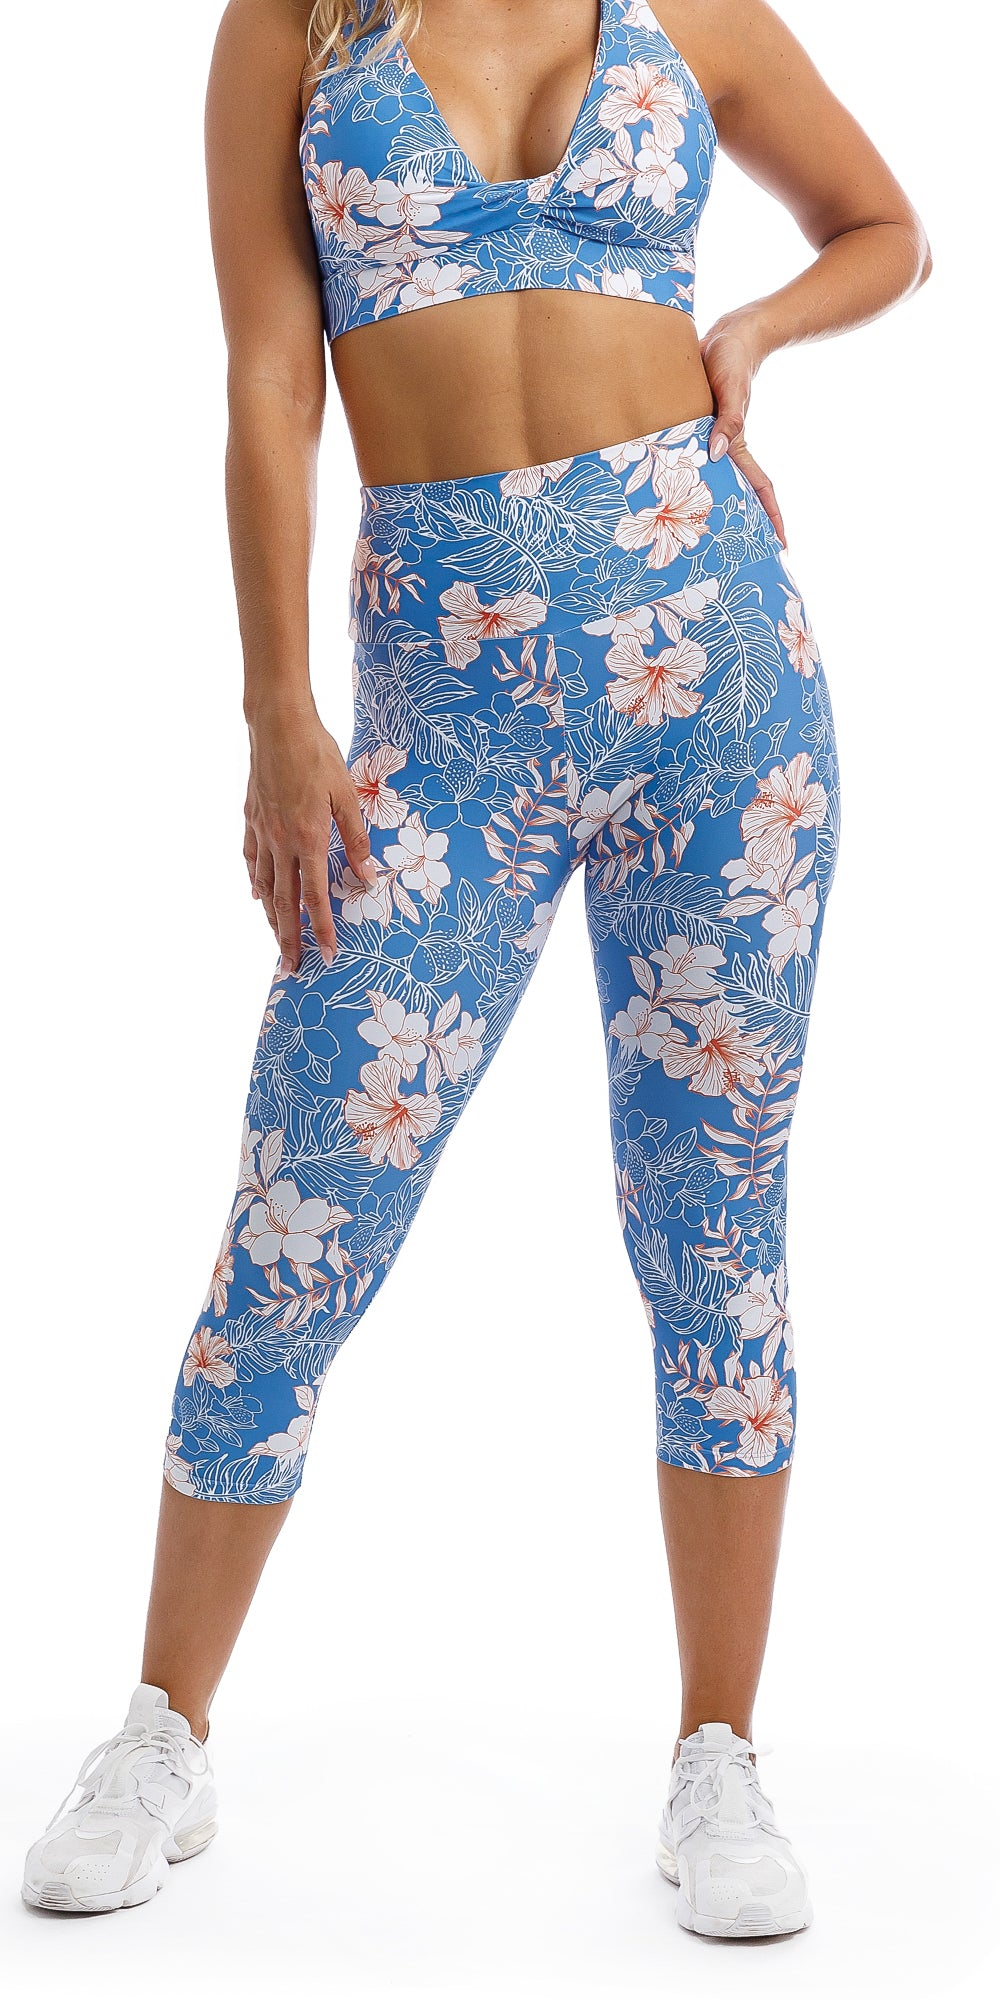 Lady wearing blue, white, pink floral Hibiscus Kiss print capri leggings & matching infinity bra